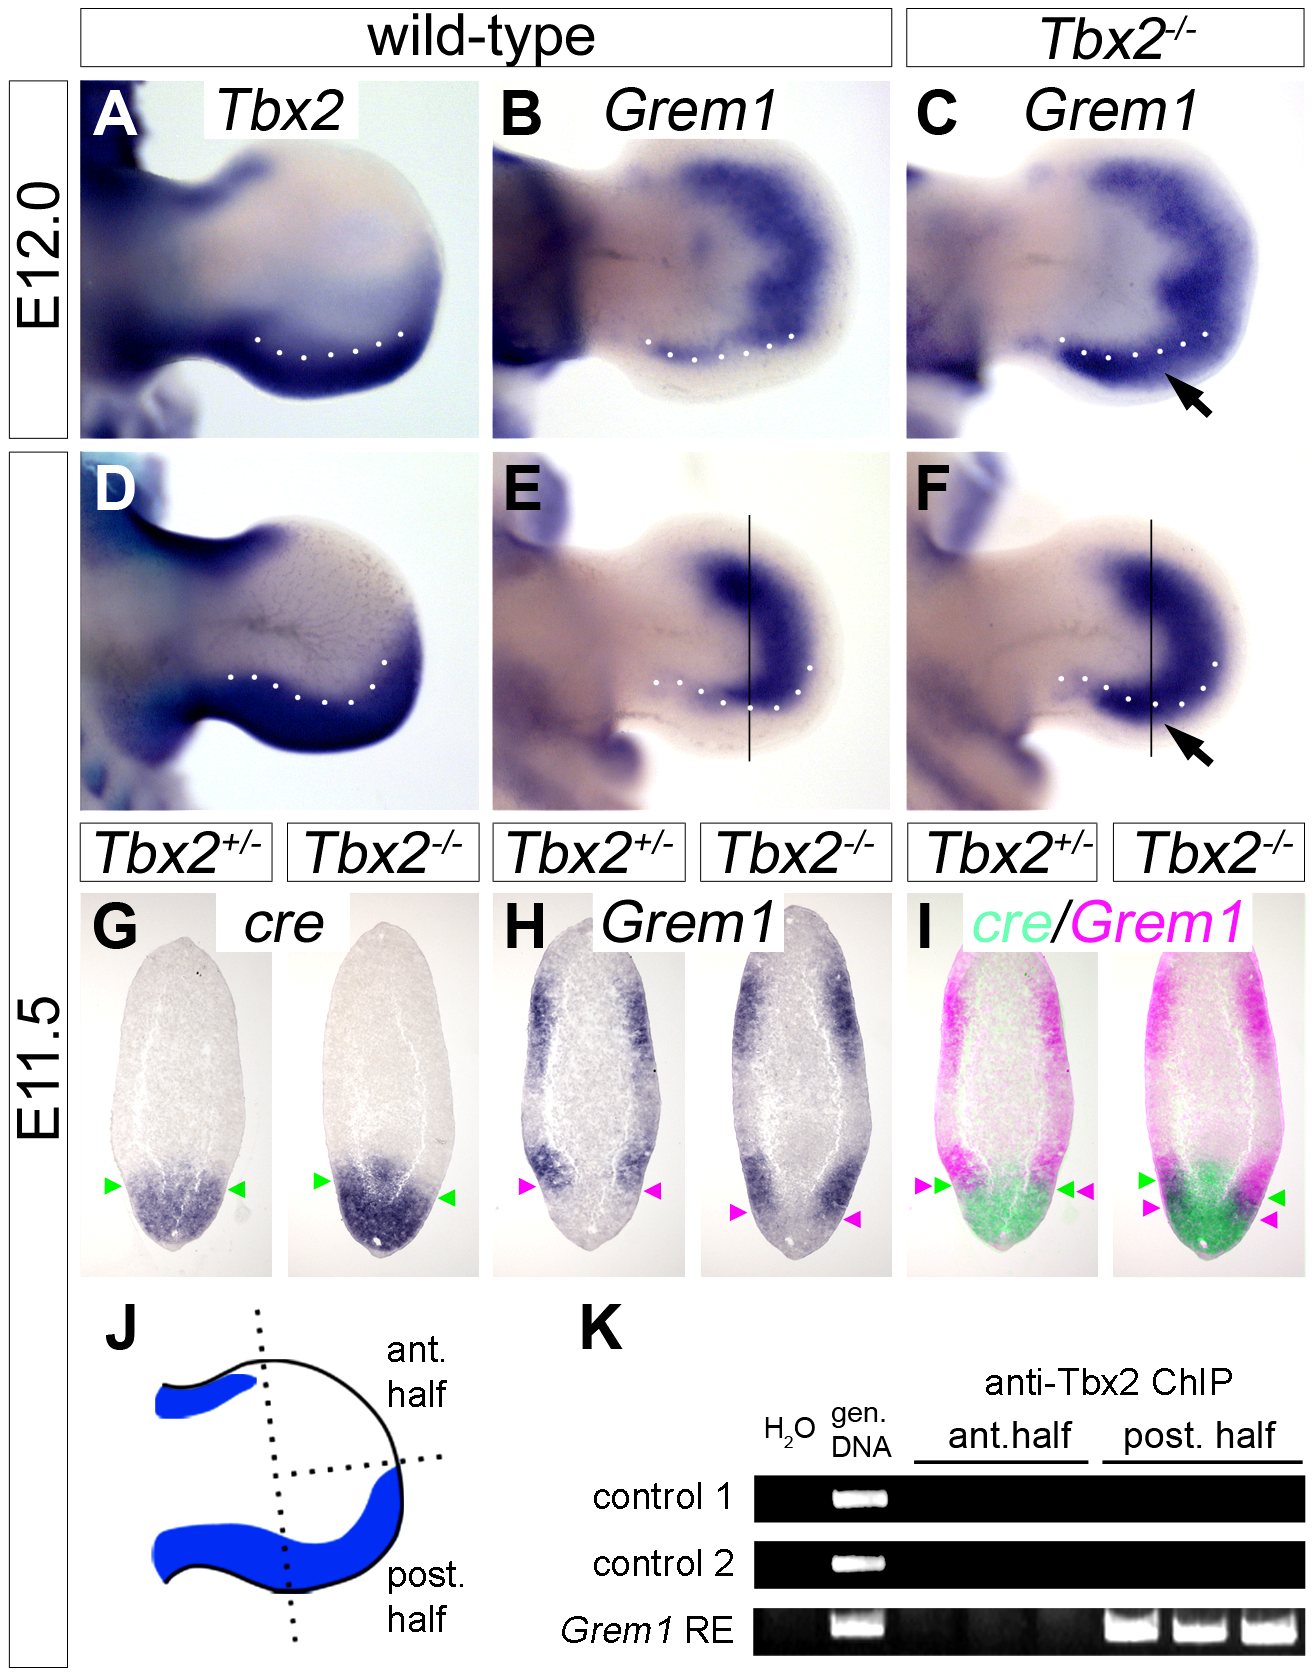 <i>Tbx2</i> directly represses <i>Grem1</i> expression in the posterior hindlimb mesenchyme.